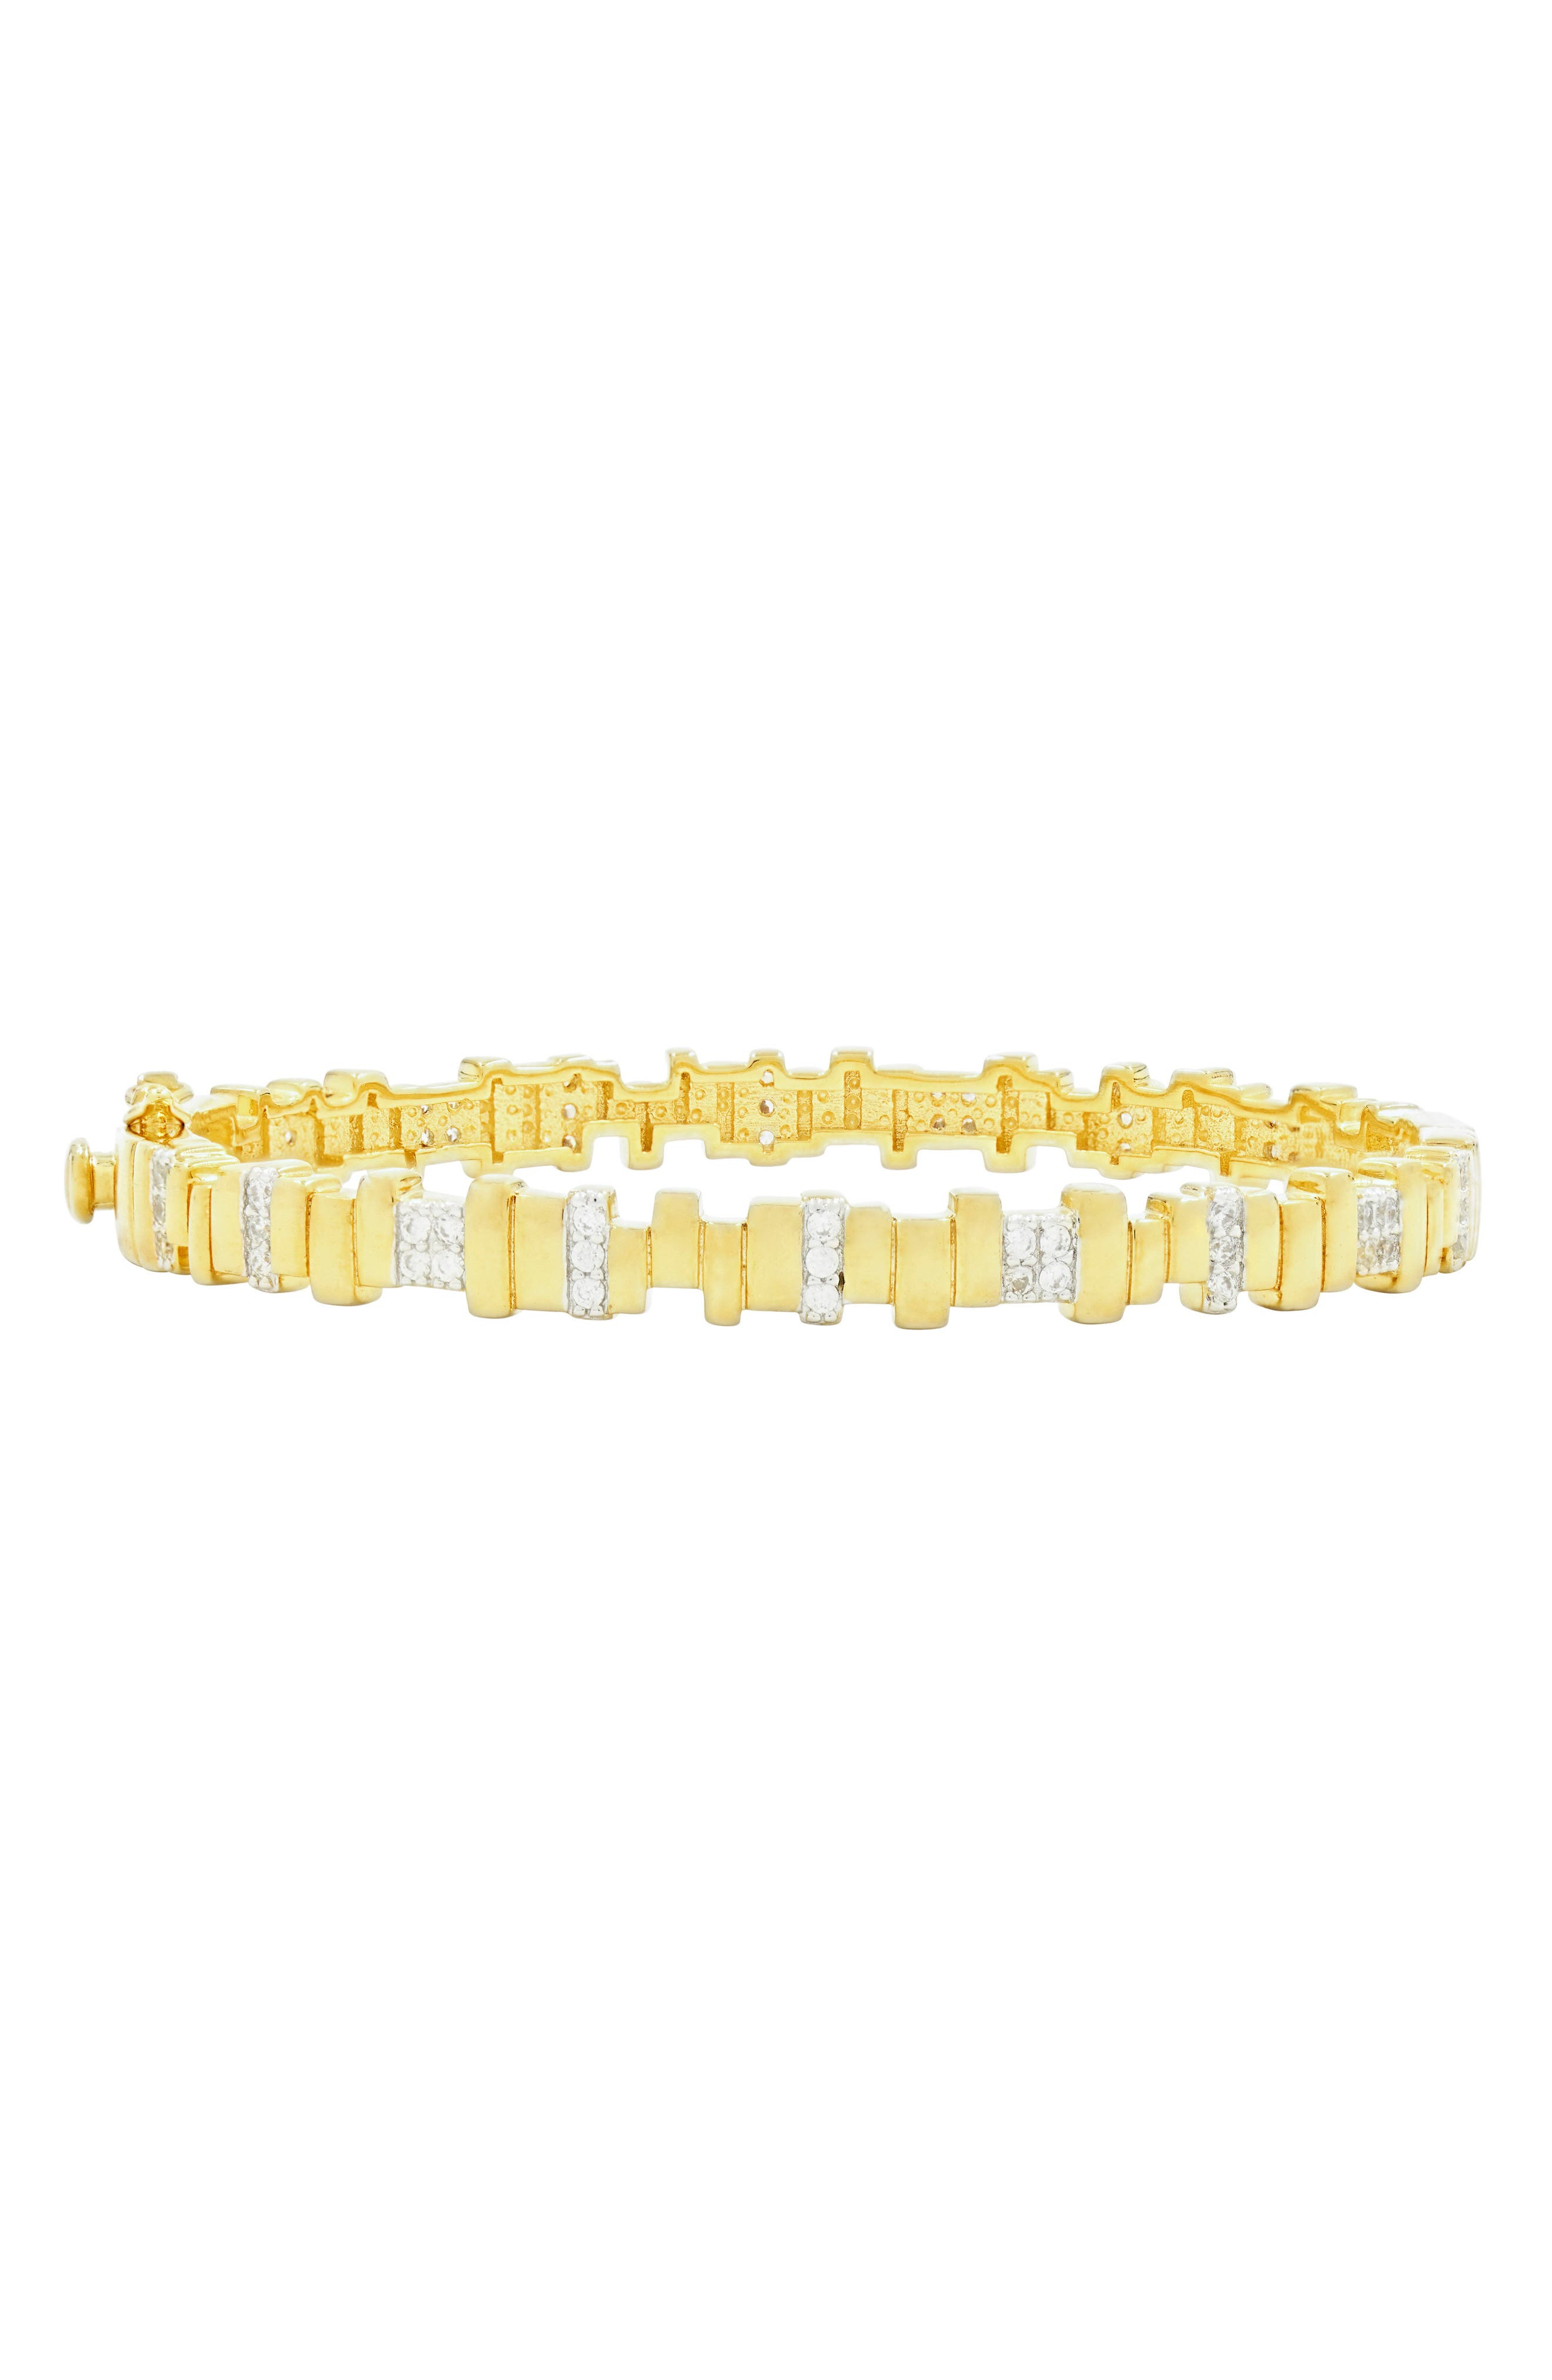 Radiance Cubic Zirconia Bangle,                         Main,                         color, Silver/ Gold